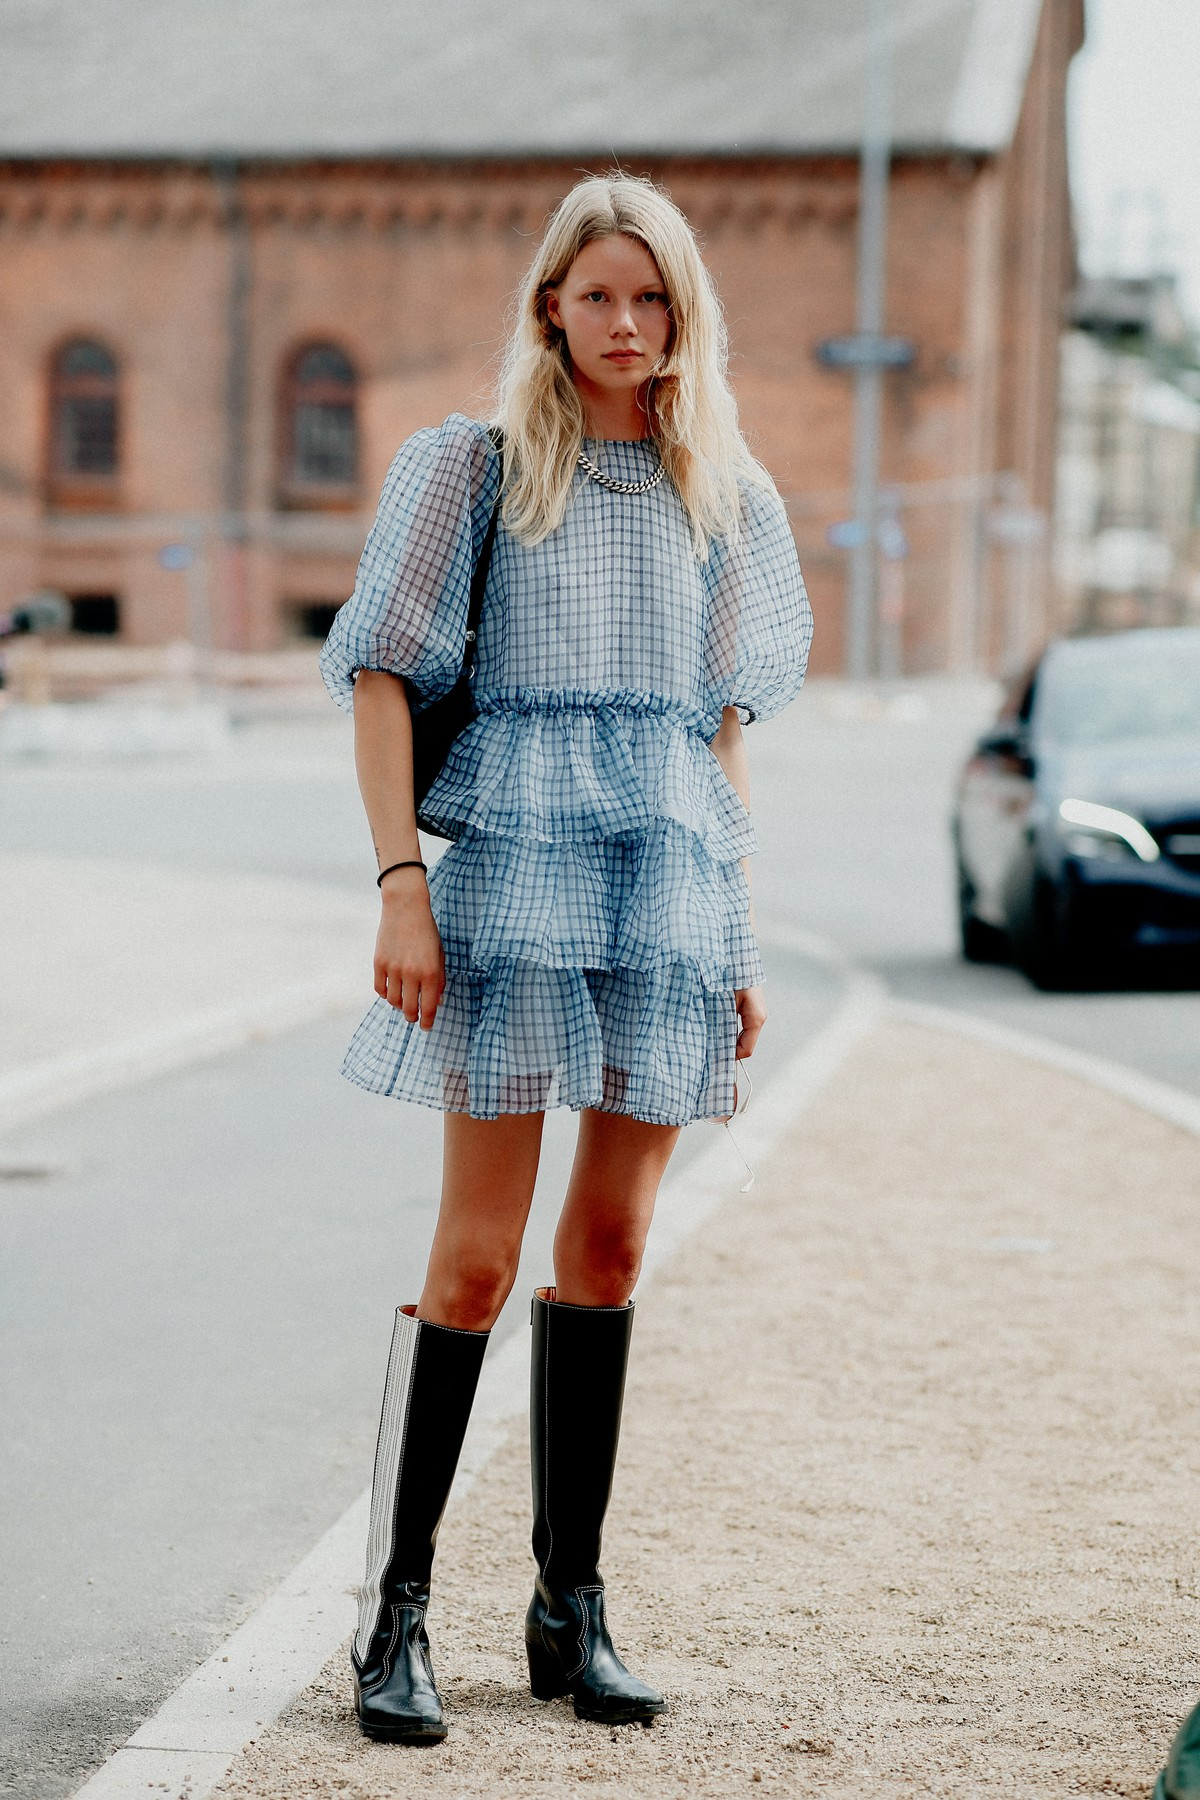 Street style, Rebekka Eriksen arriving at 7 days active Spring Summer 2021 show, held at Carlsberg HQ, Copenhagen, Denmark, on August 10th, 2020.,Image: 551765665, License: Rights-managed, Restrictions: , Model Release: no, Credit line: Bertrand-Hillion Marie-Paola/ABACA / Abaca Press / Profimedia